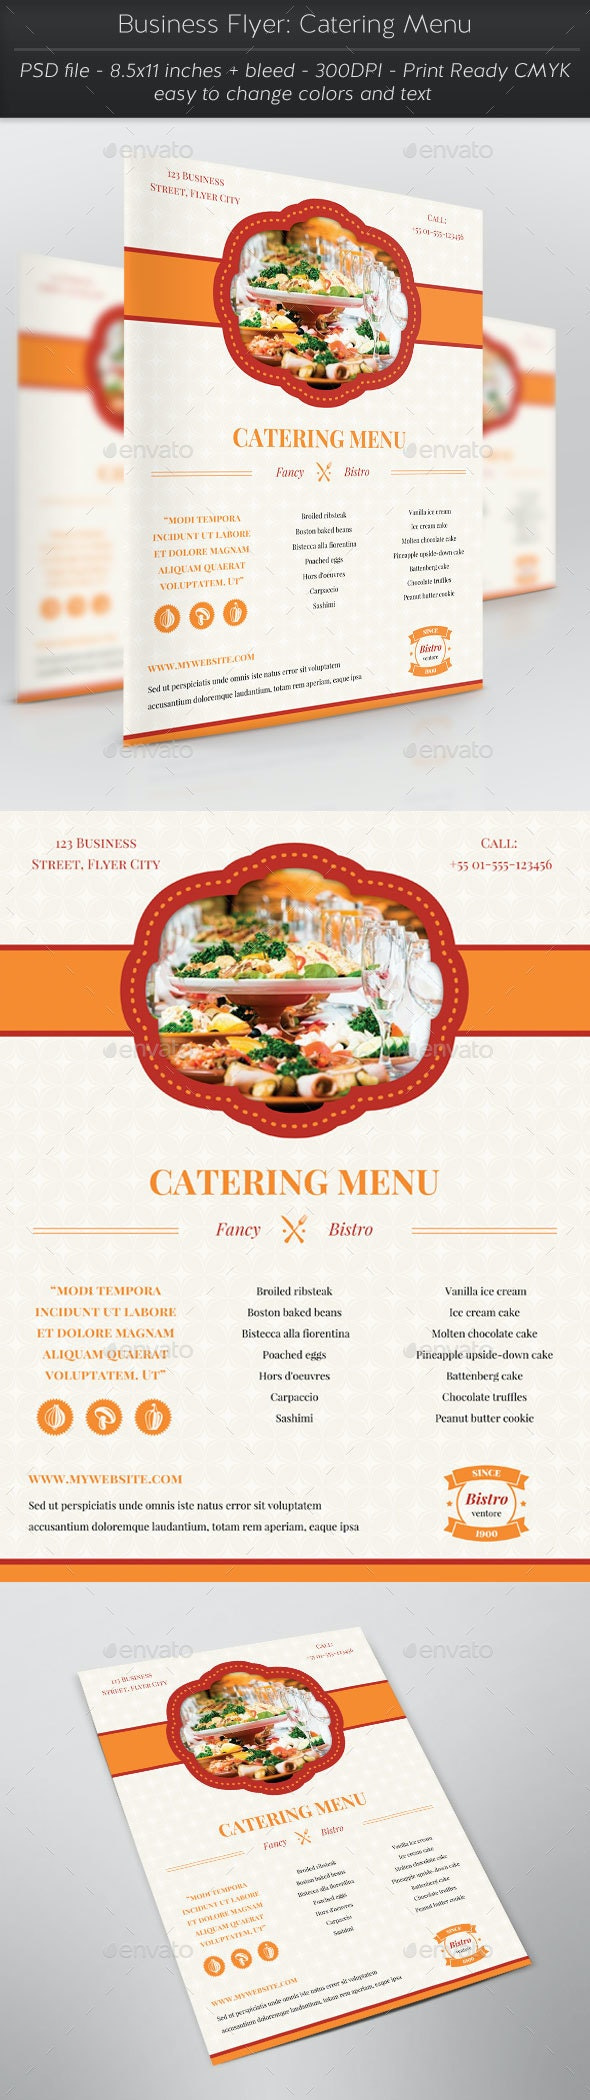 Business Flyer: Catering Menu